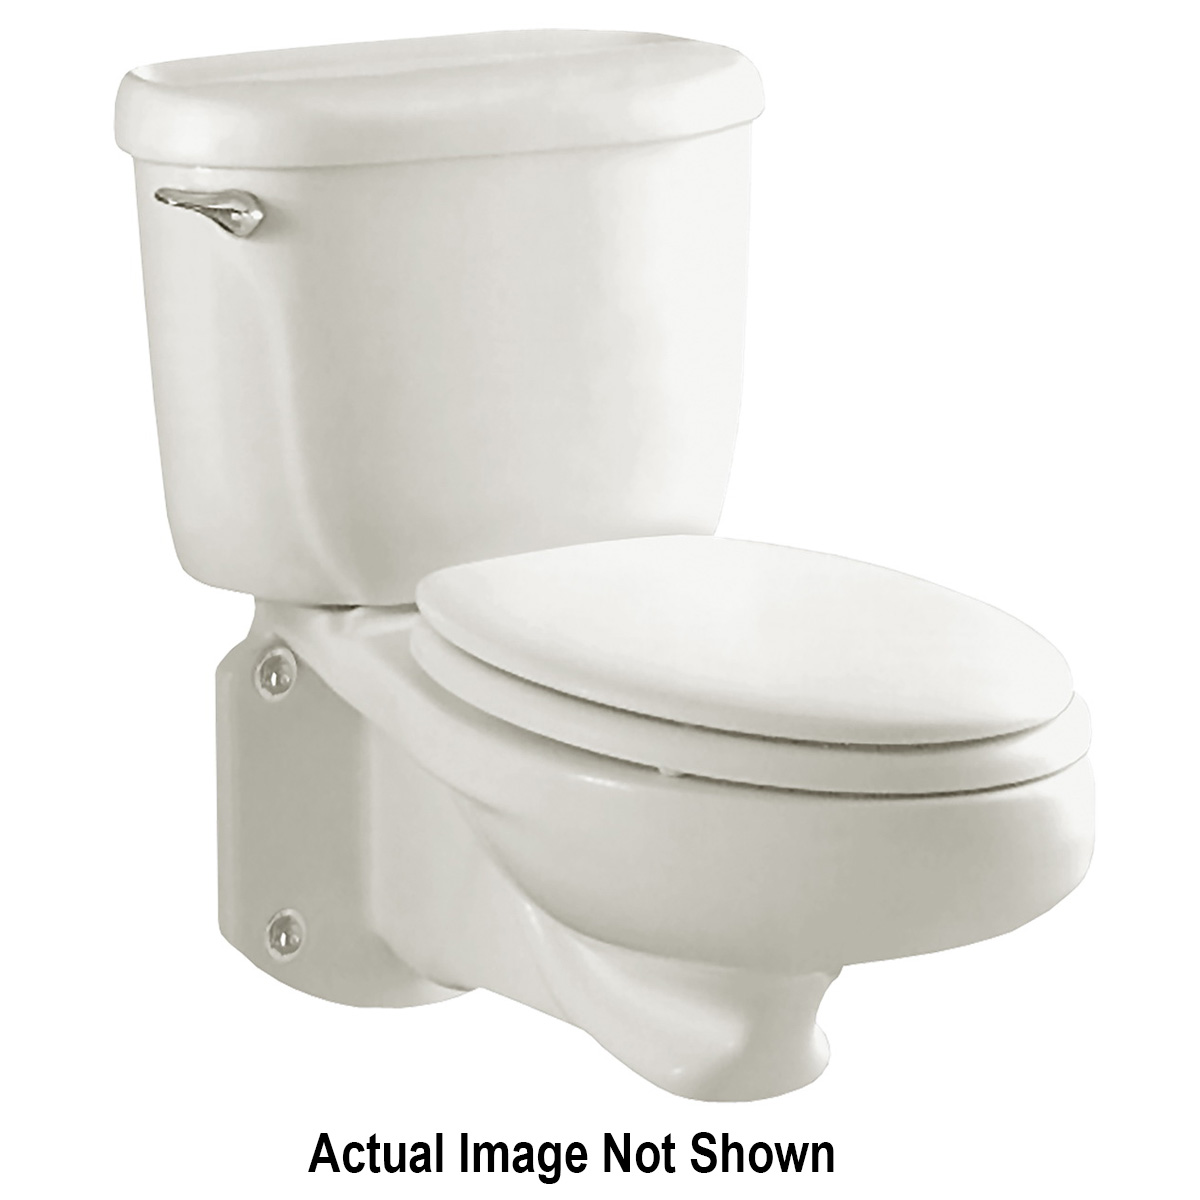 American Standard 3402.016.021 Glenwall™ Toilet Bowl, Elongated, 10 x 12 in, 14-1/2 to 16-1/2 in, 2 in